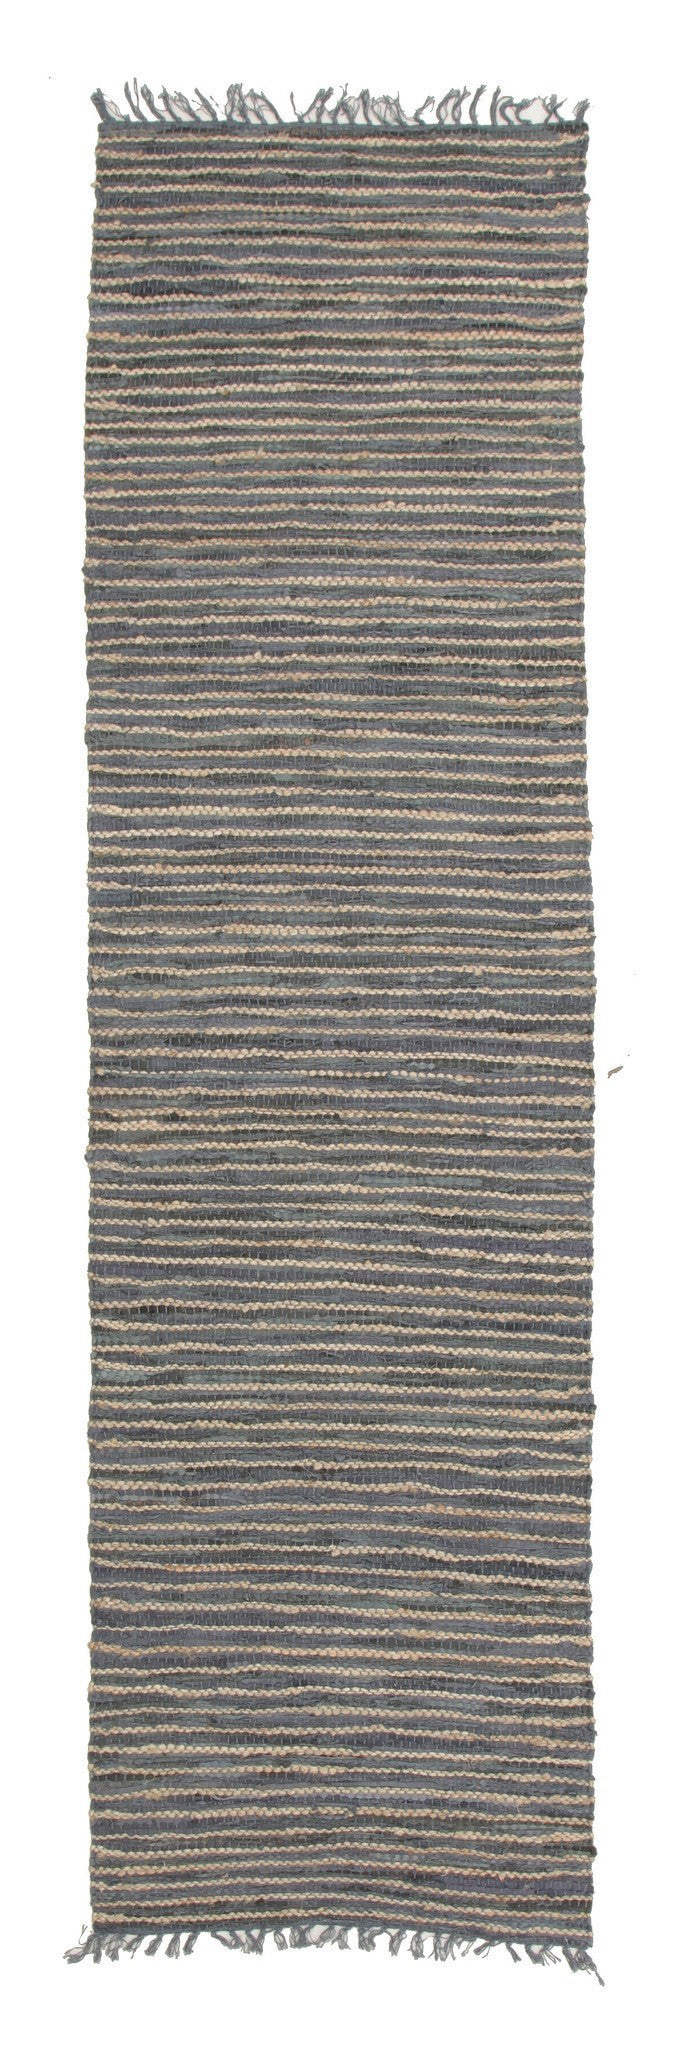 Bondi Leather and Jute Rug Grey - MaddieBelle